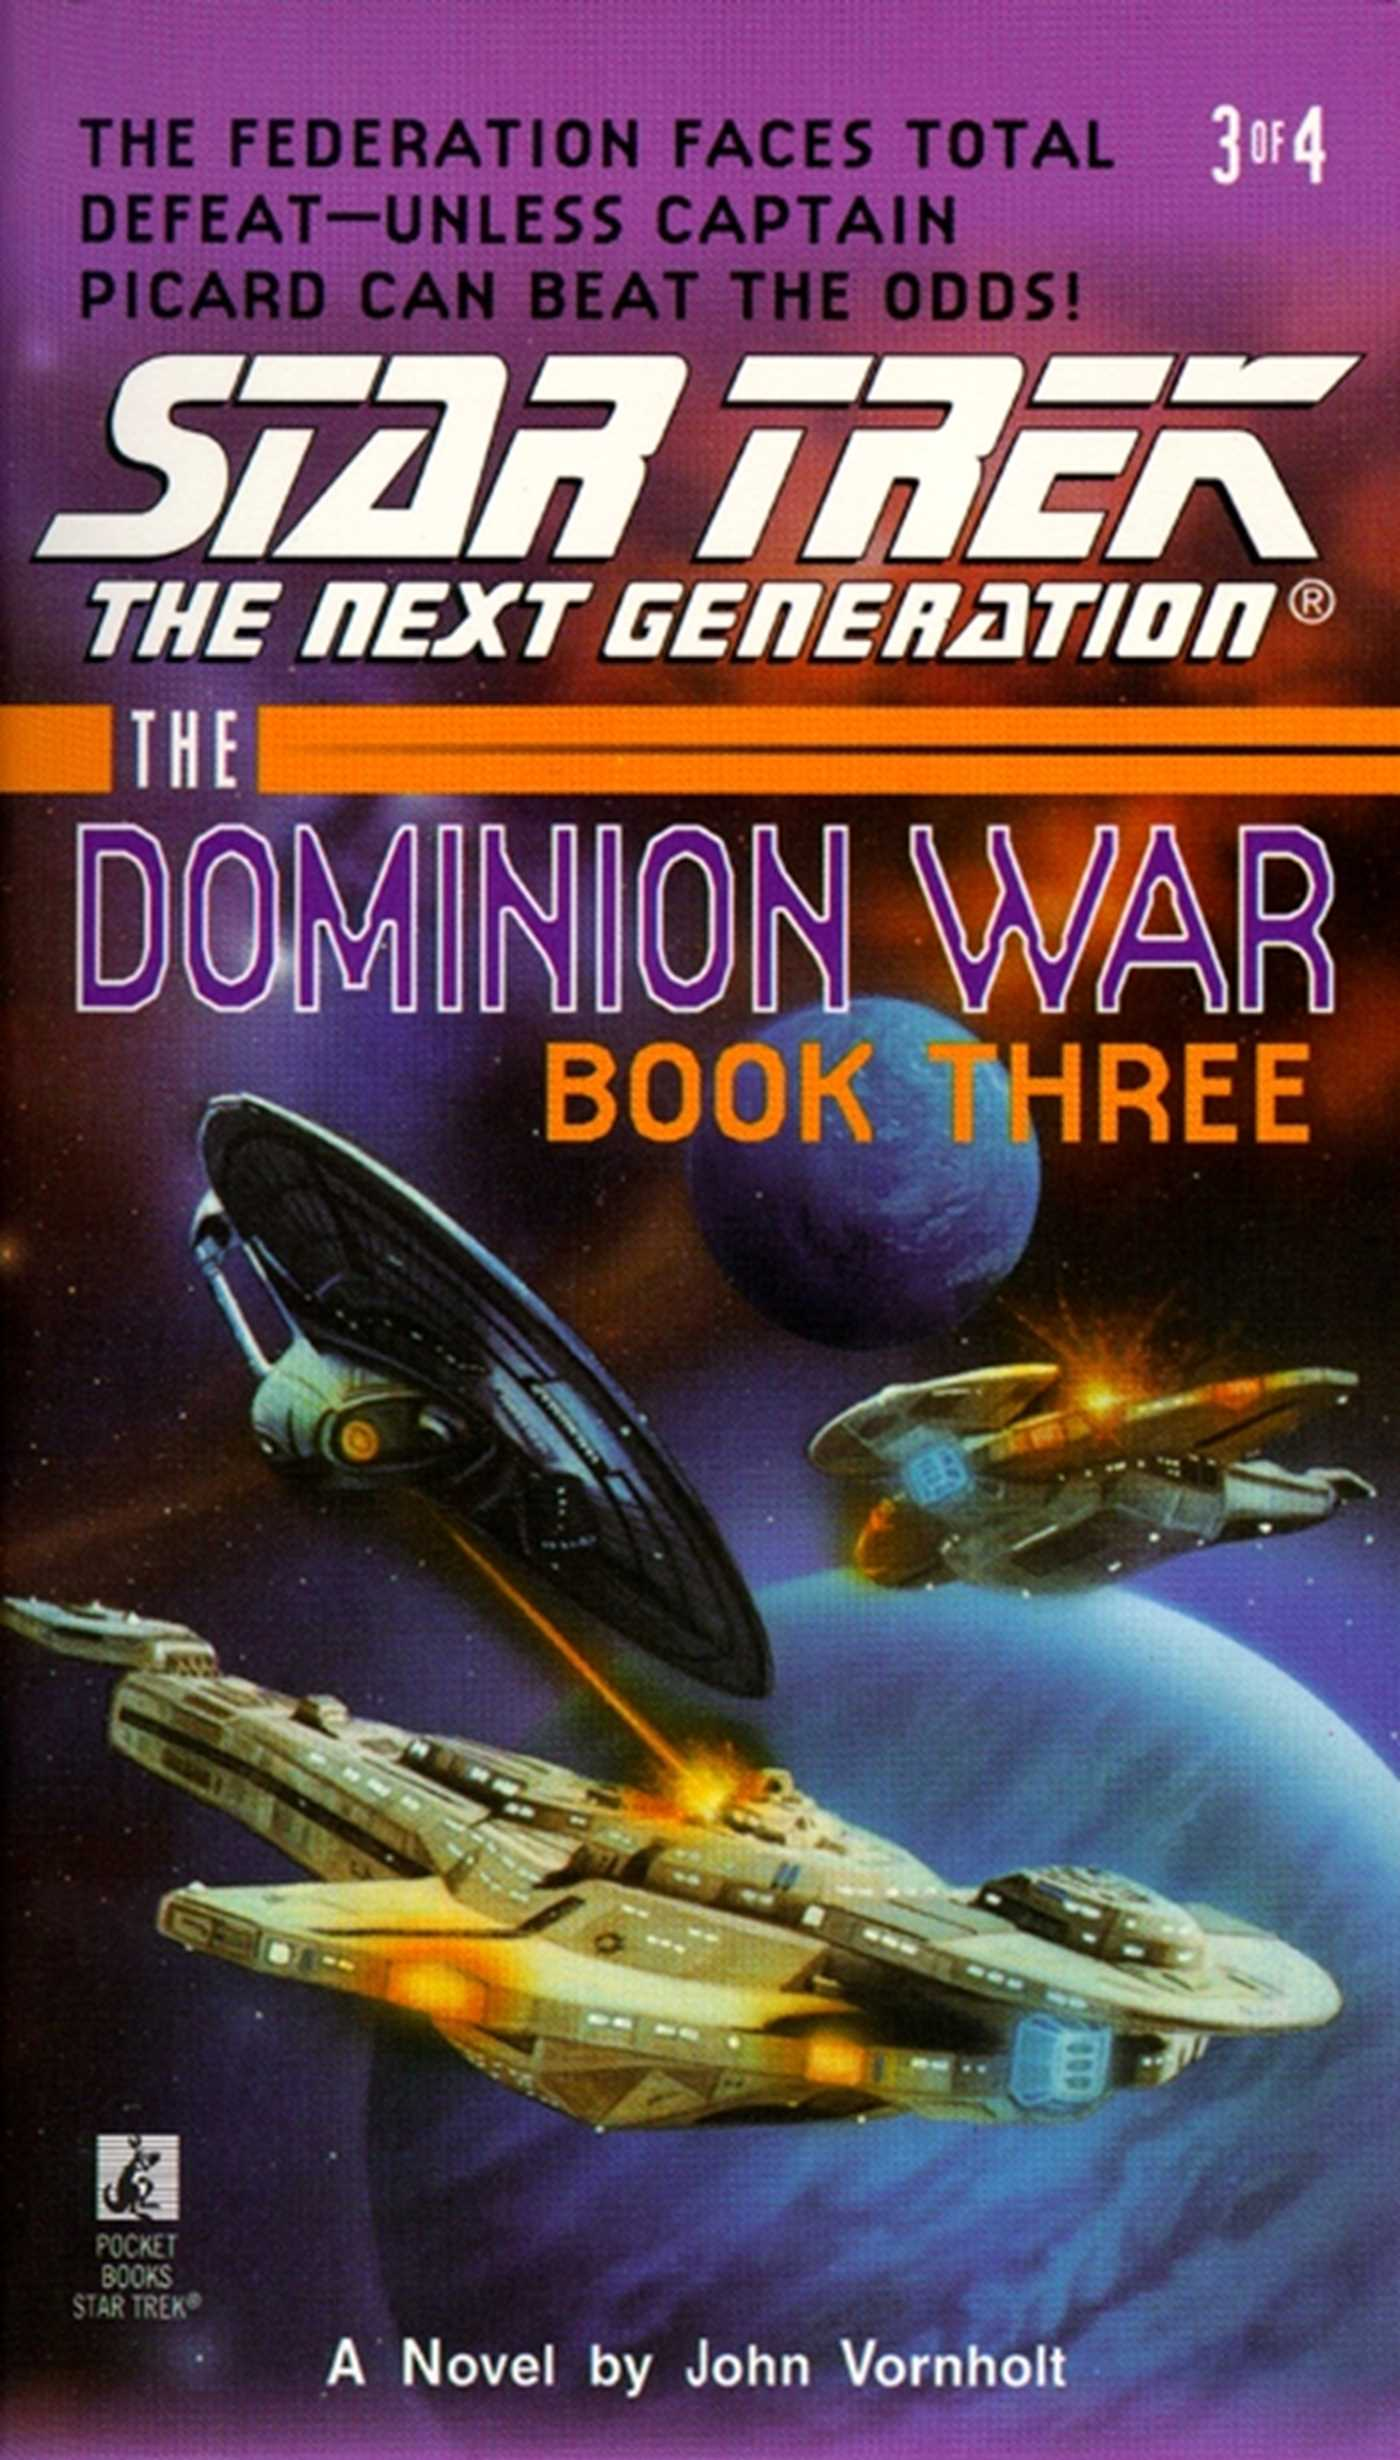 Star-trek-the-dominion-war-book-3-9780671041069_hr